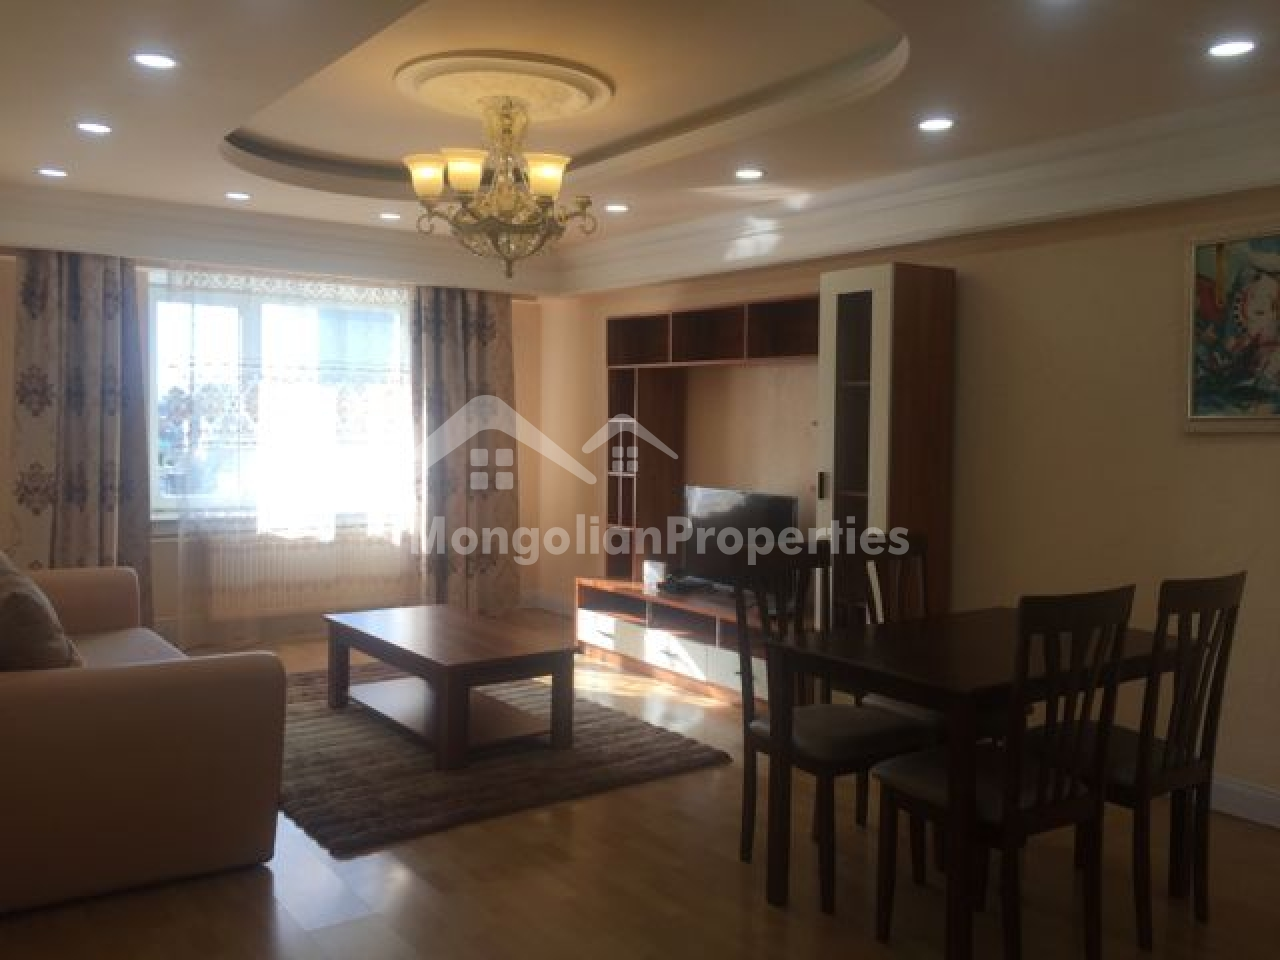 Near United Nation and Main square, cozy 2 bedroom apartment is for rent